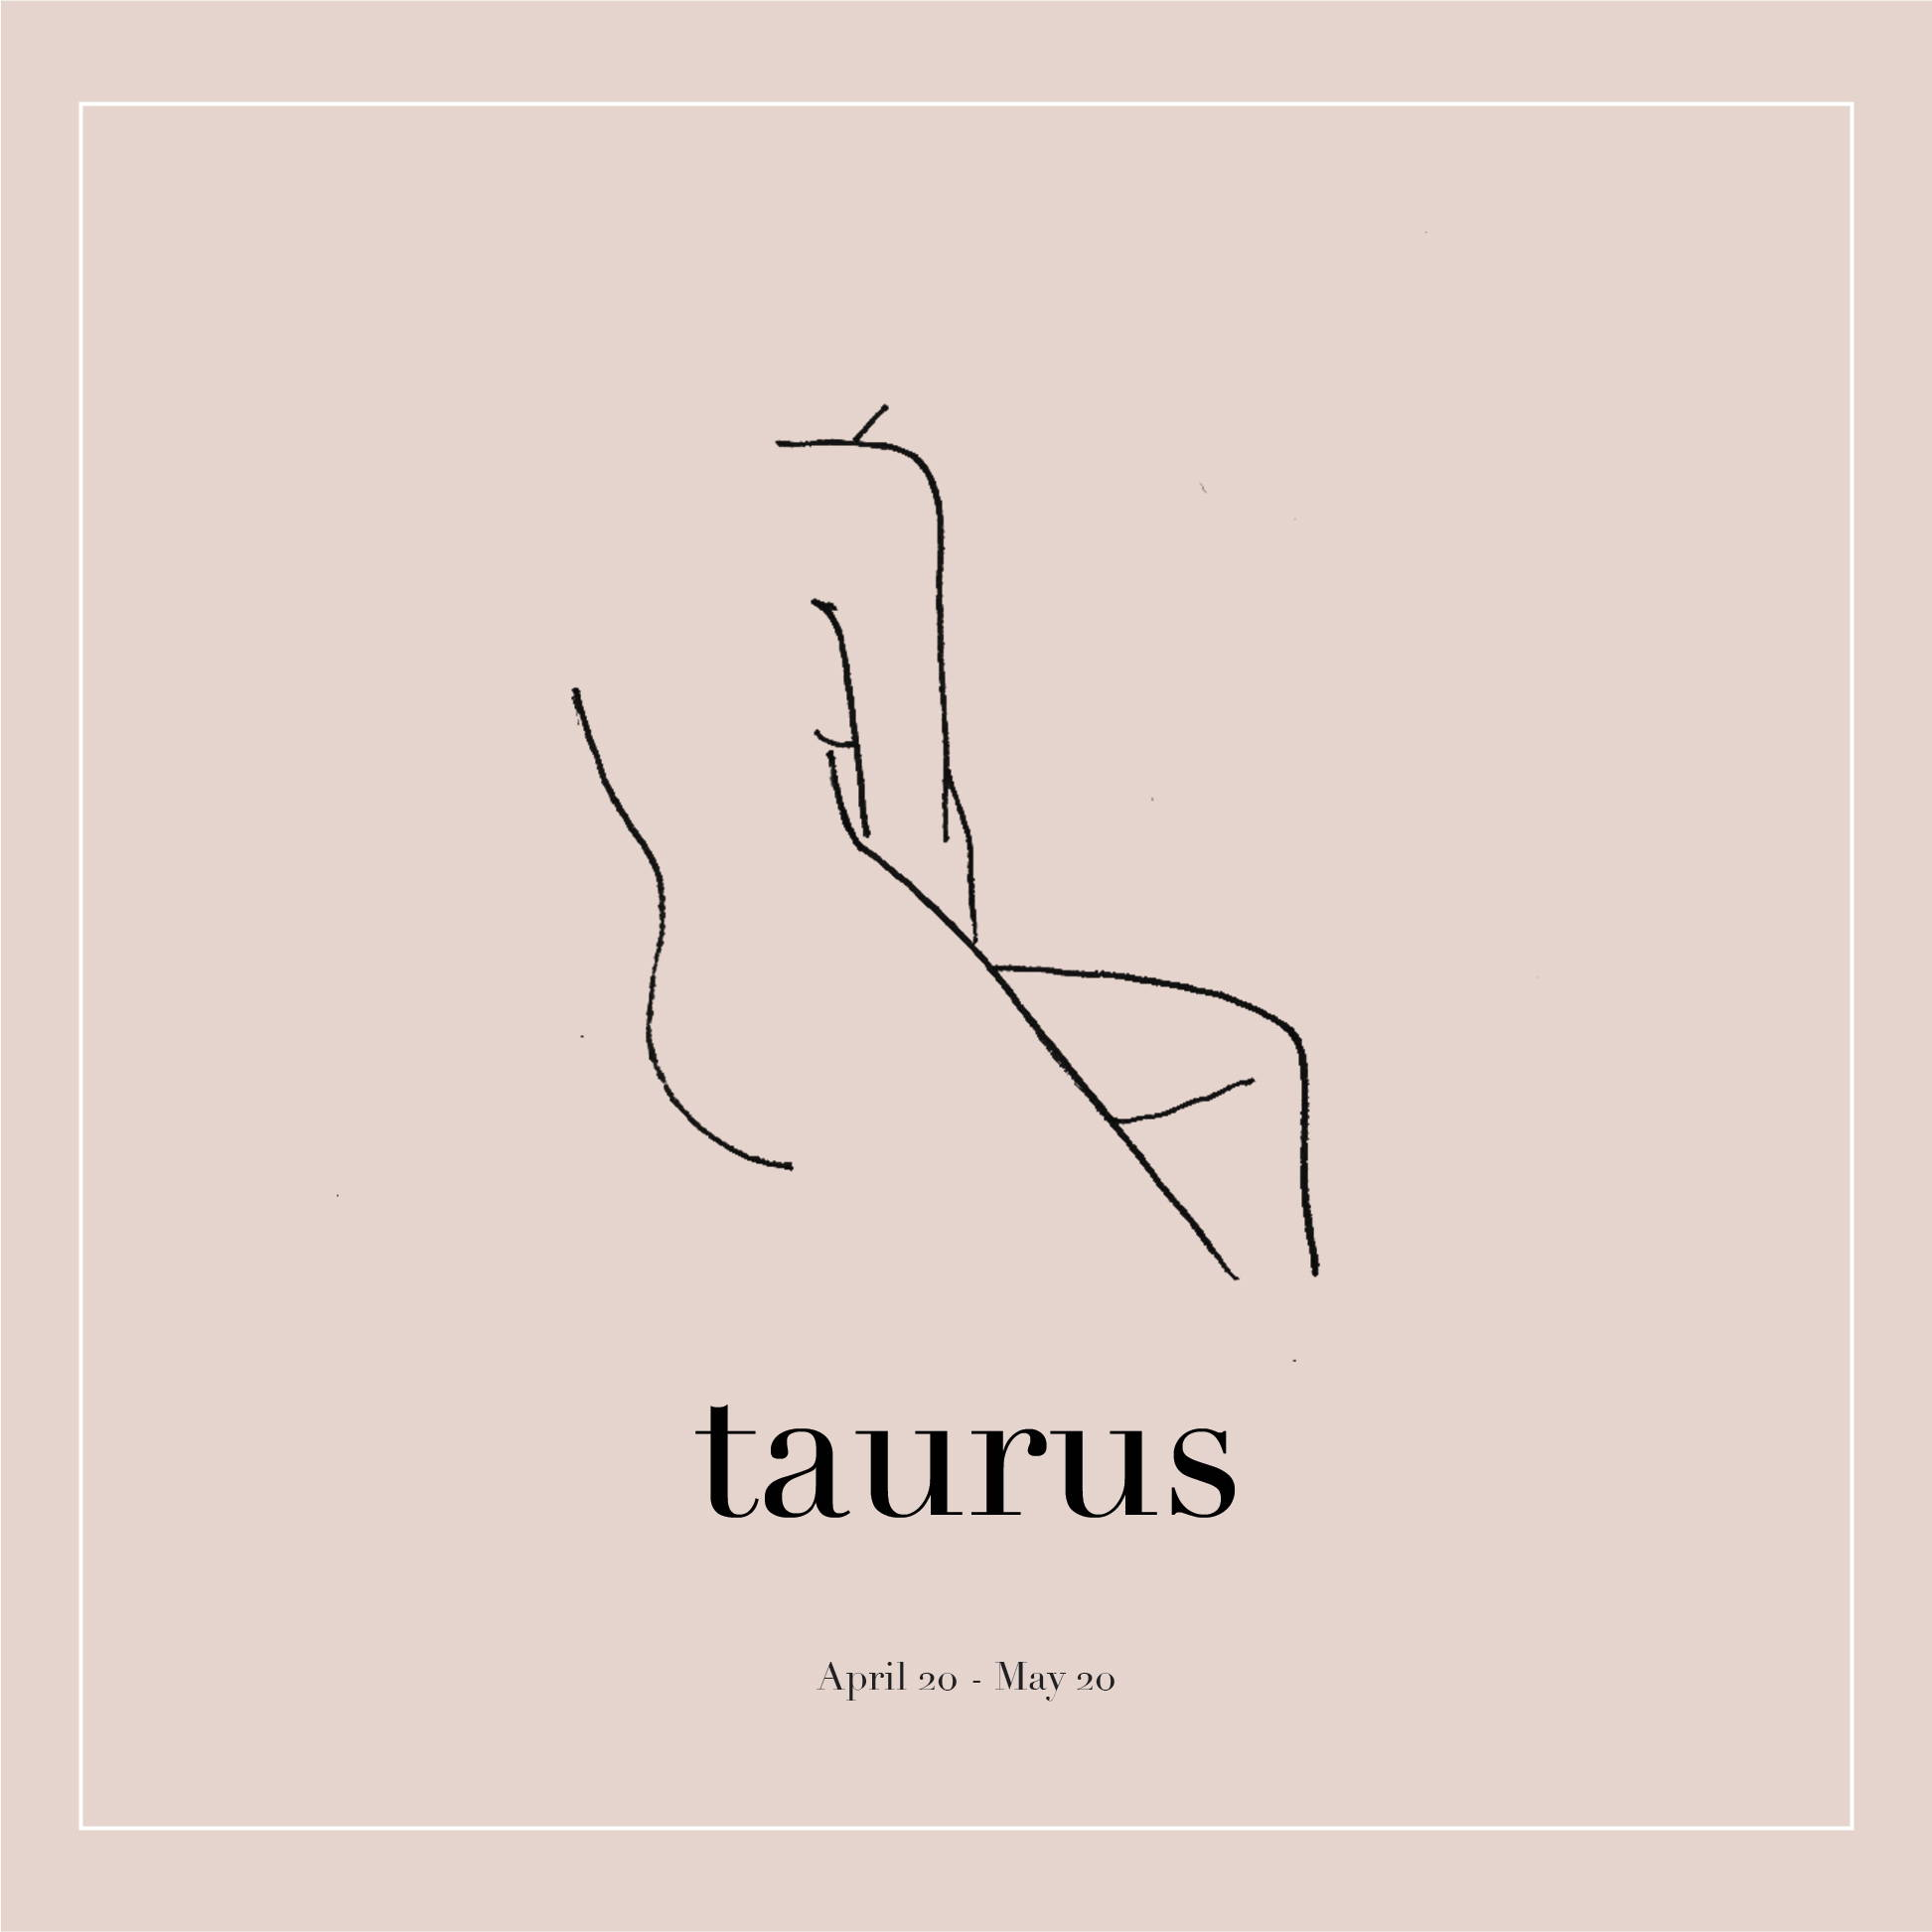 Star Sign of the Month: Taurus